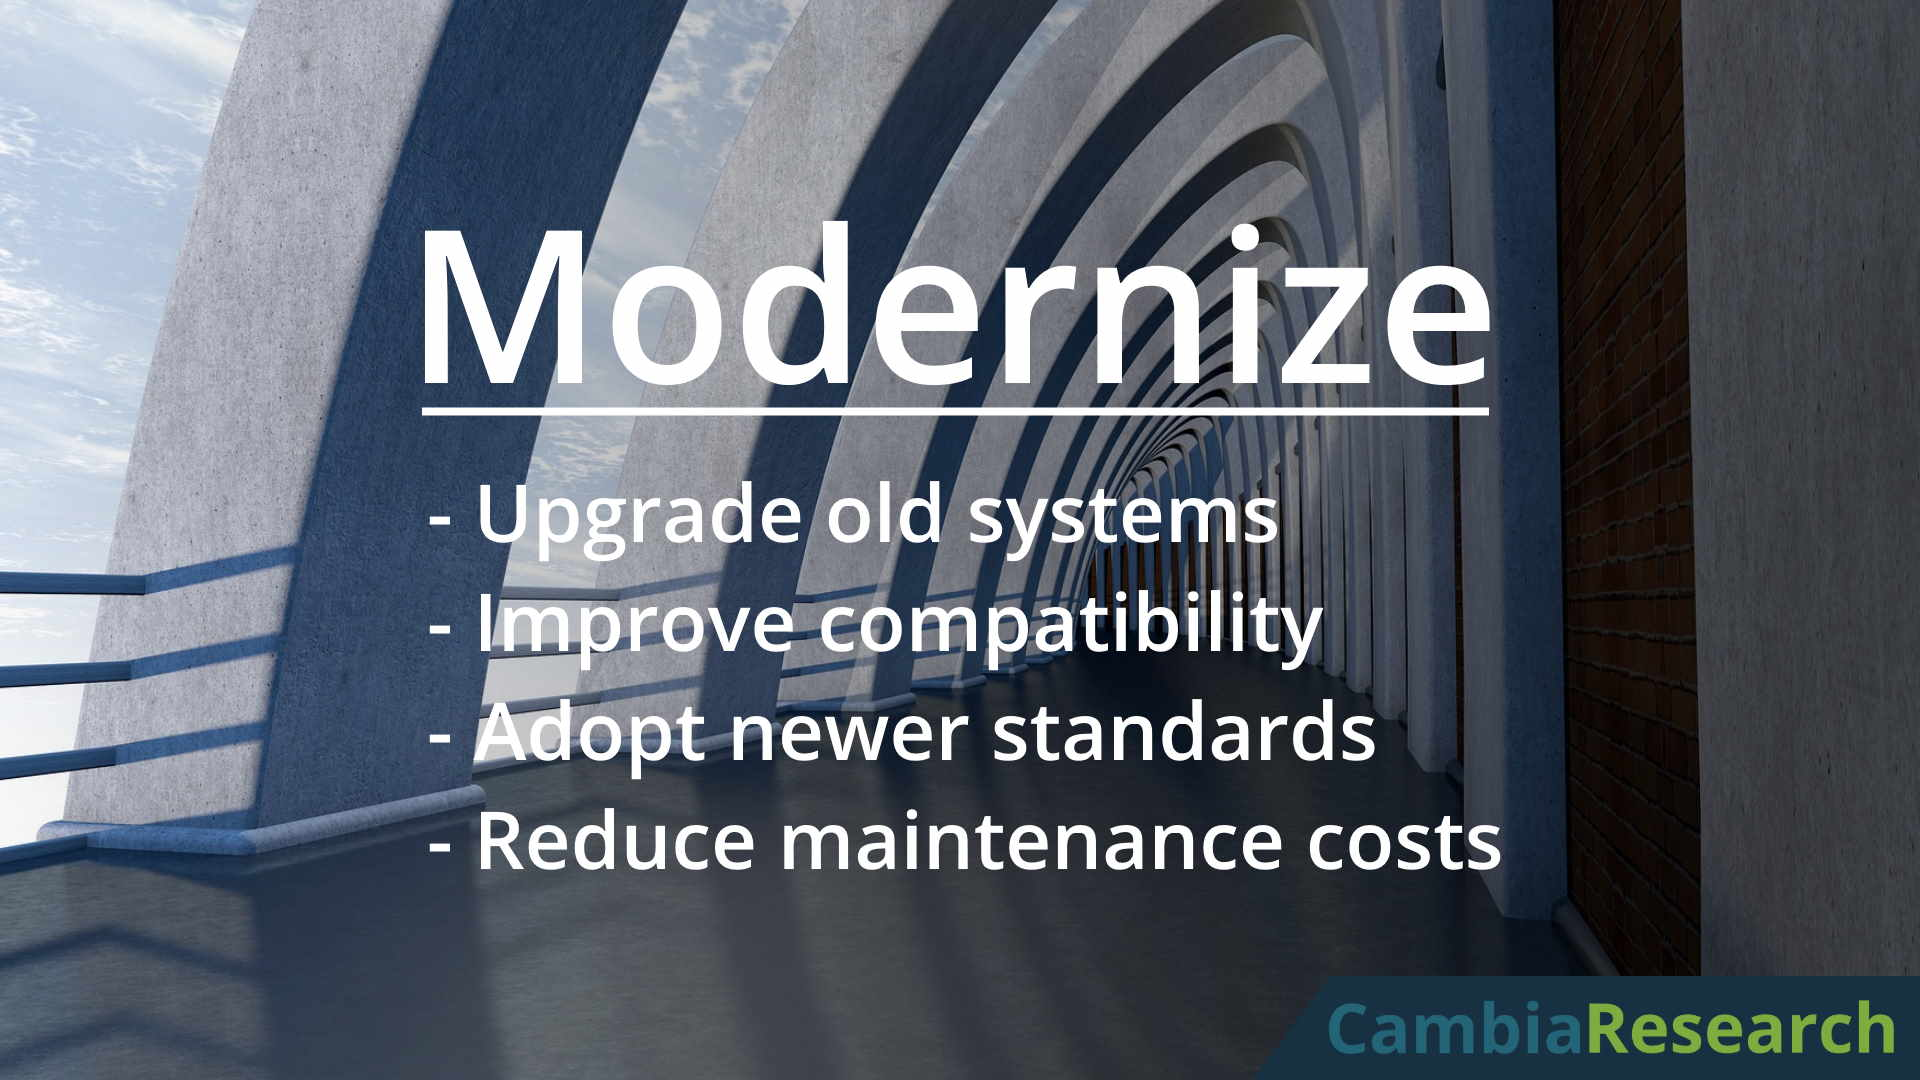 Kansas City companies can save money by modernizing their software with custom solutions.